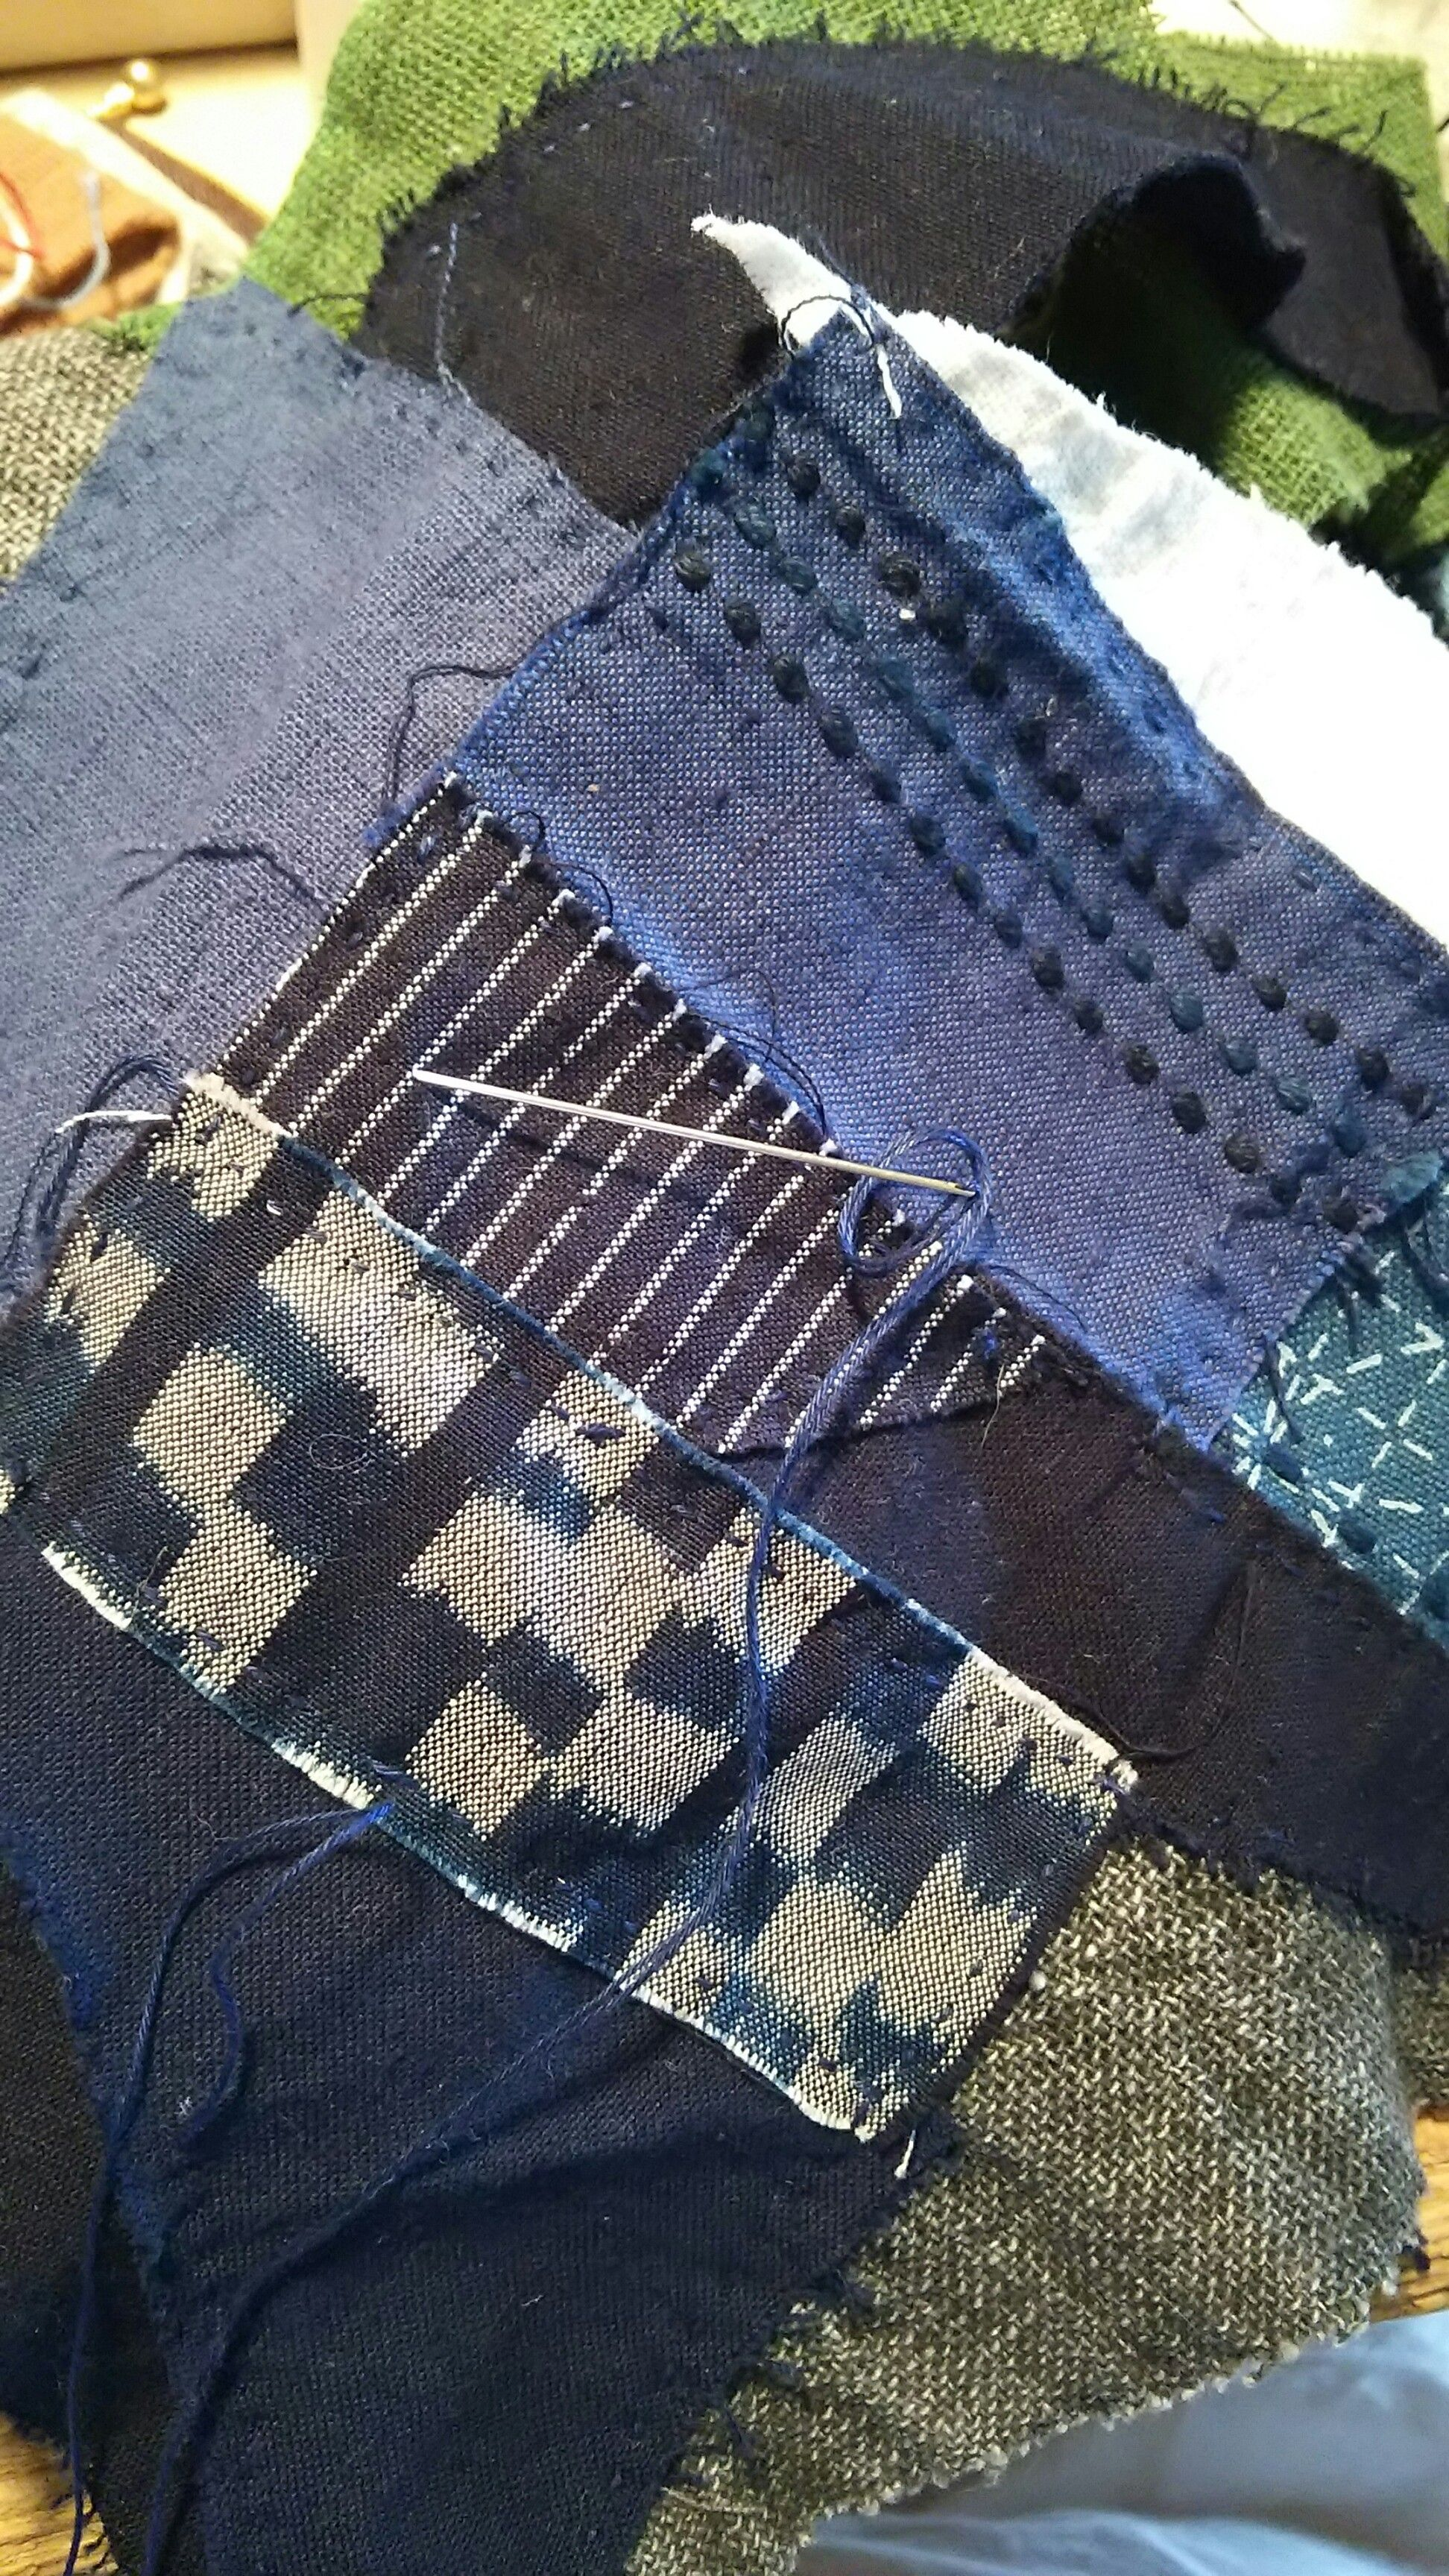 """❤ =^..^= ❤     Scrap Buster!  Sew leftovers together """"as is"""" 